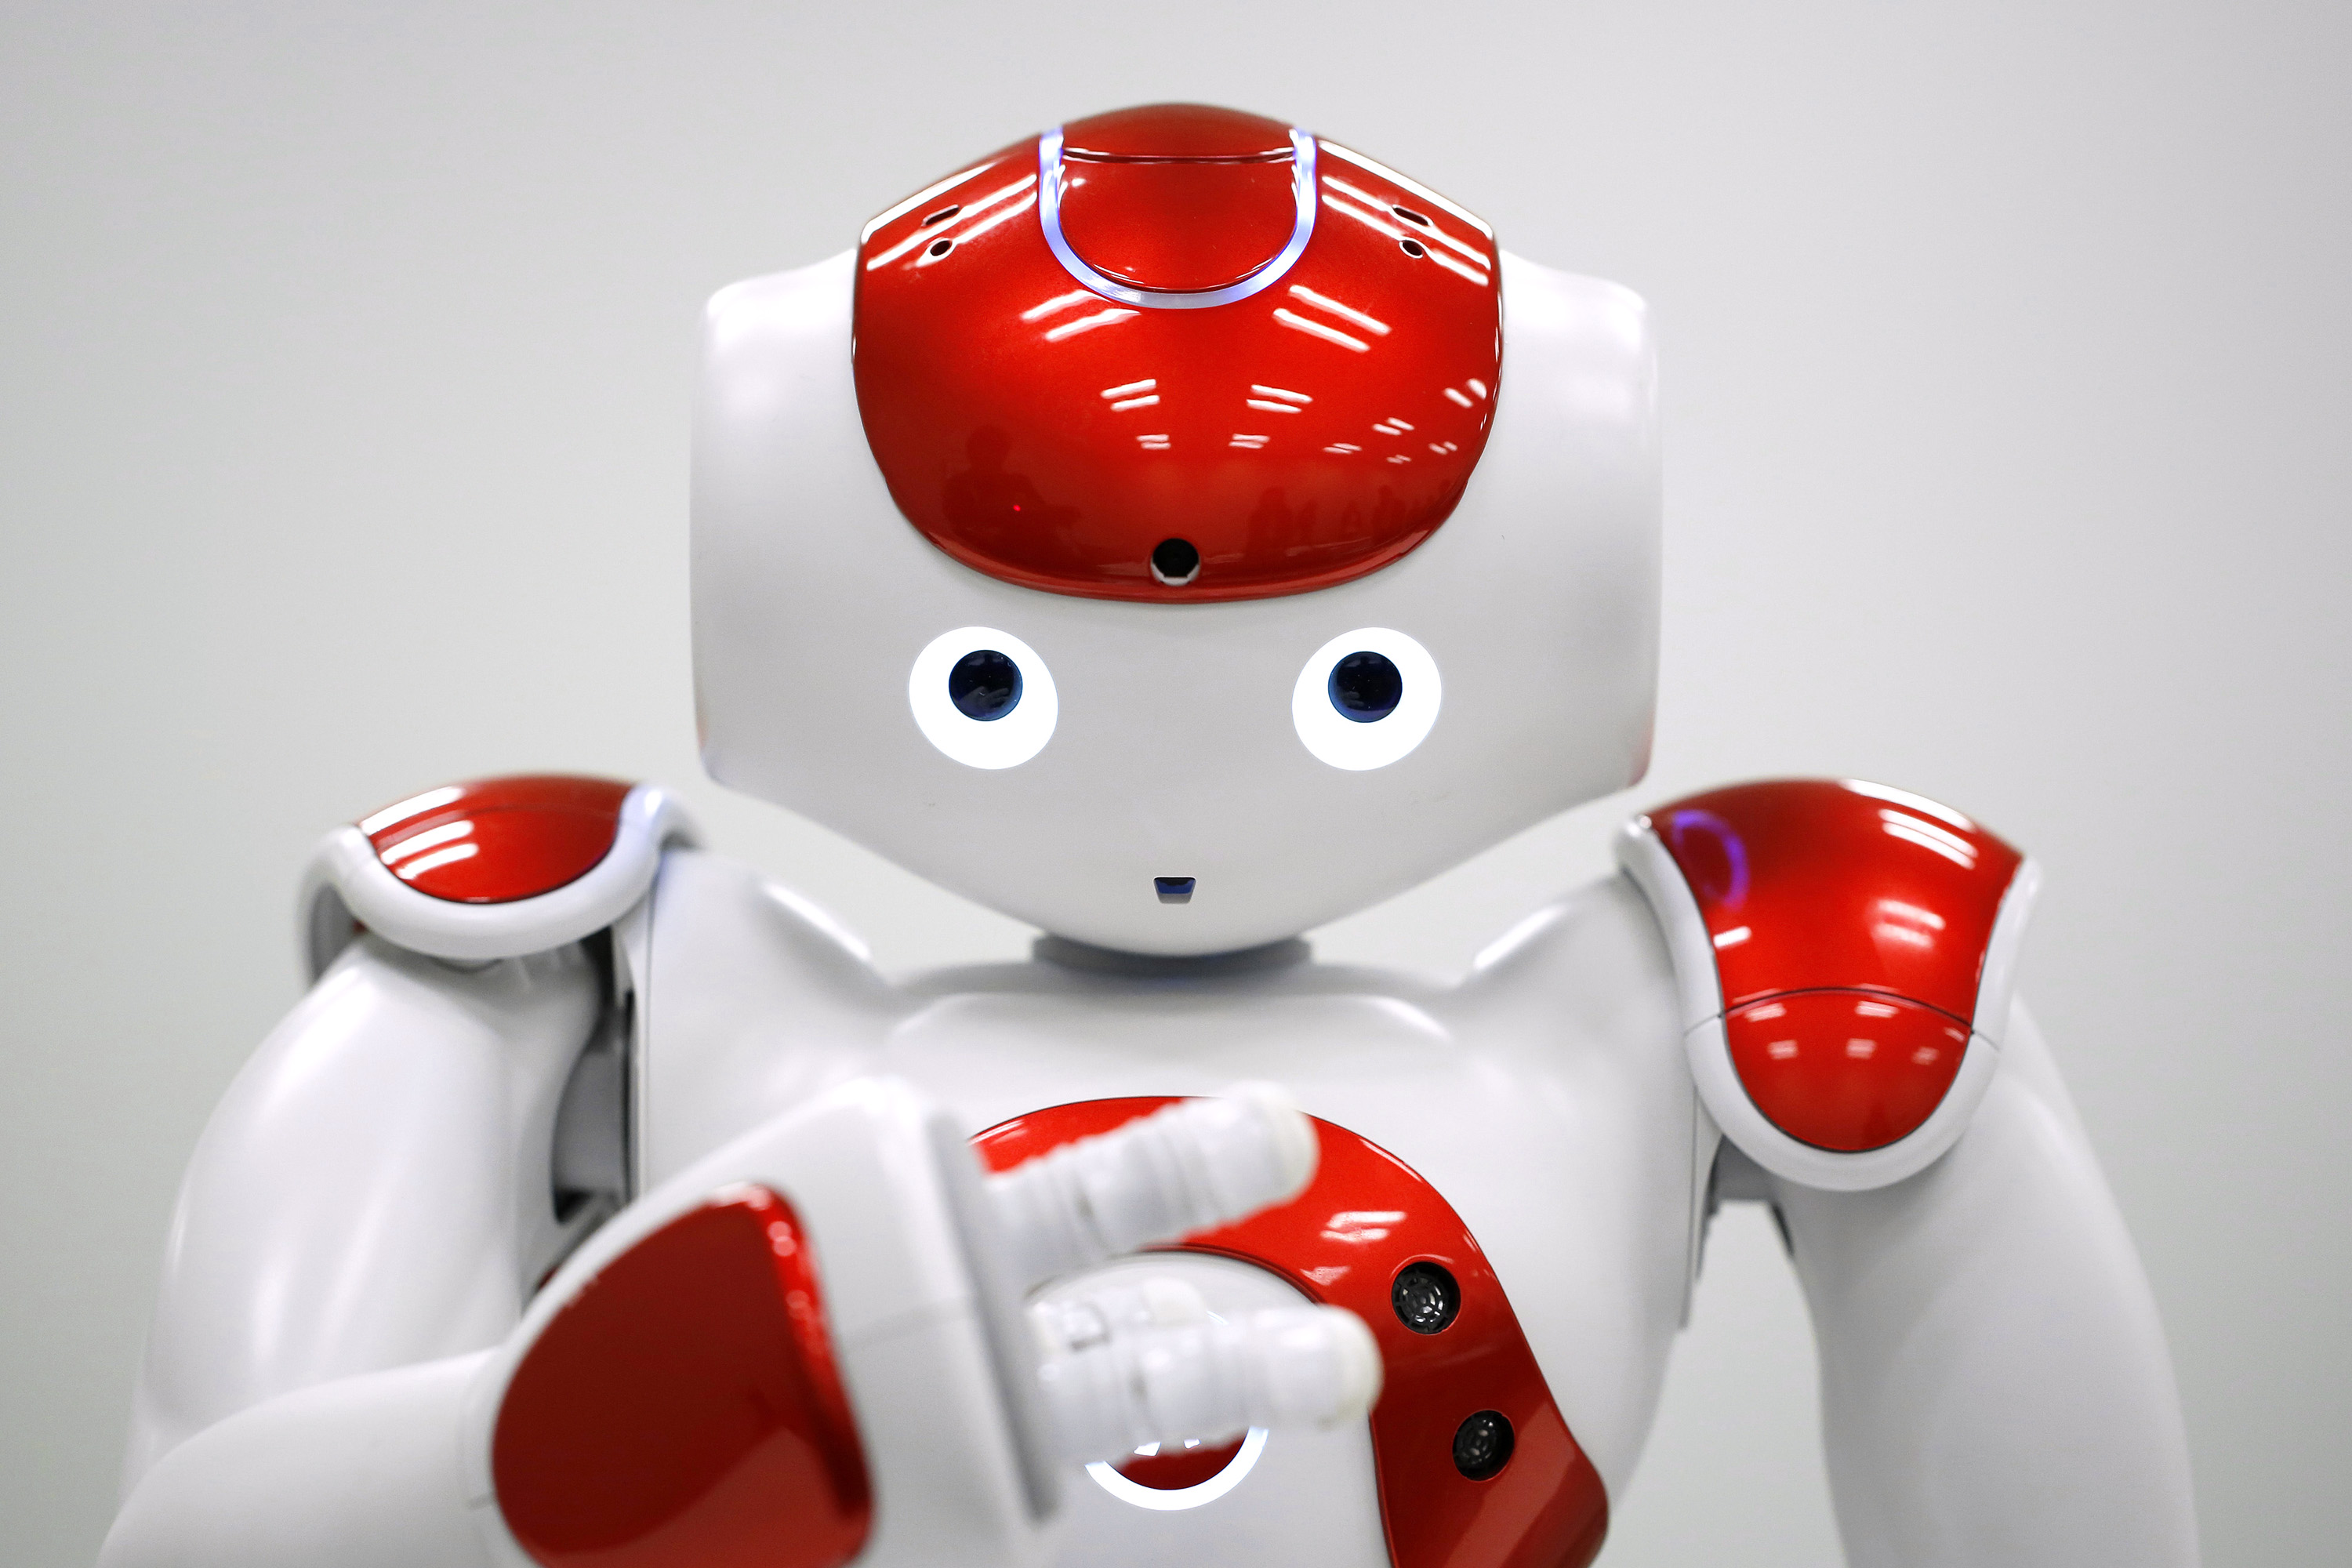 Bank of Tokyo Mitsubishi UFJ Ltd. Demonstrates Nao Robot Clerk To Be Used In Bank Branches